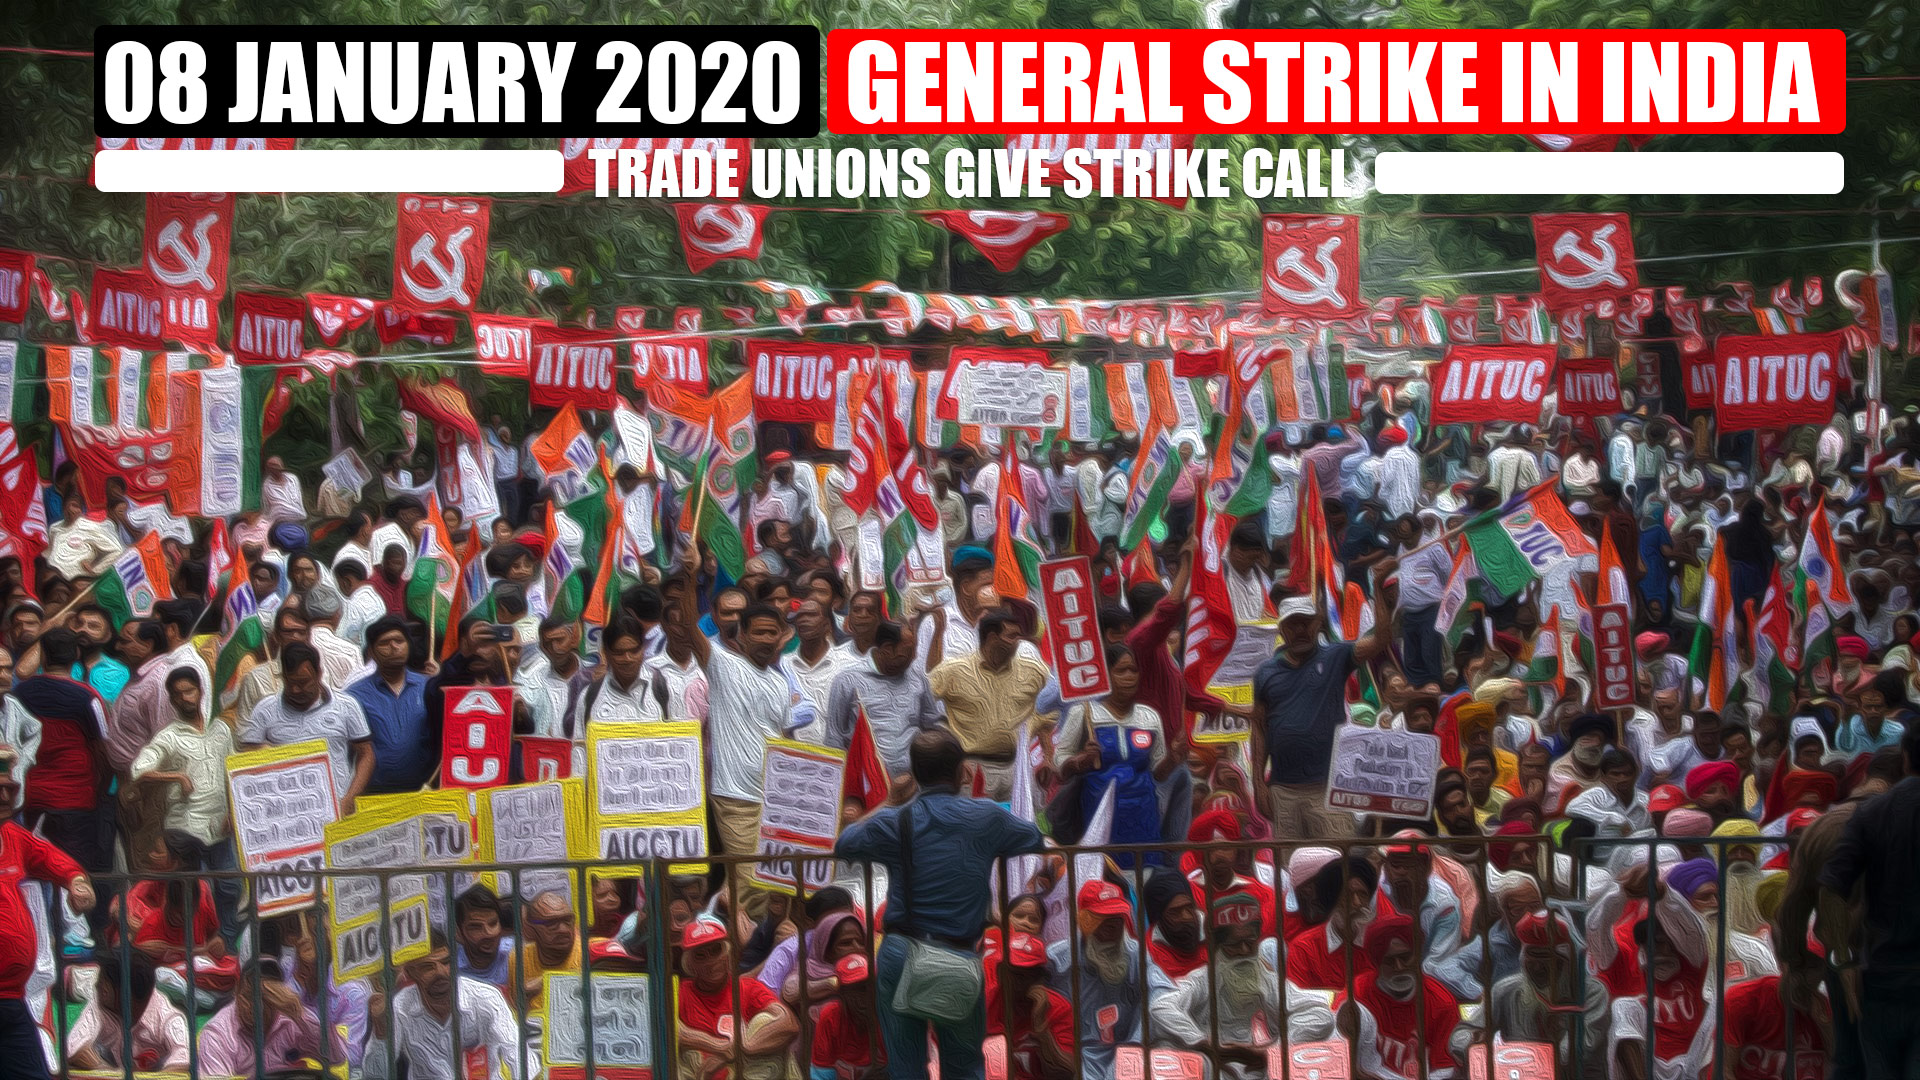 Trade unions in India give strike call on 8jan _Trade unions convention 30sept